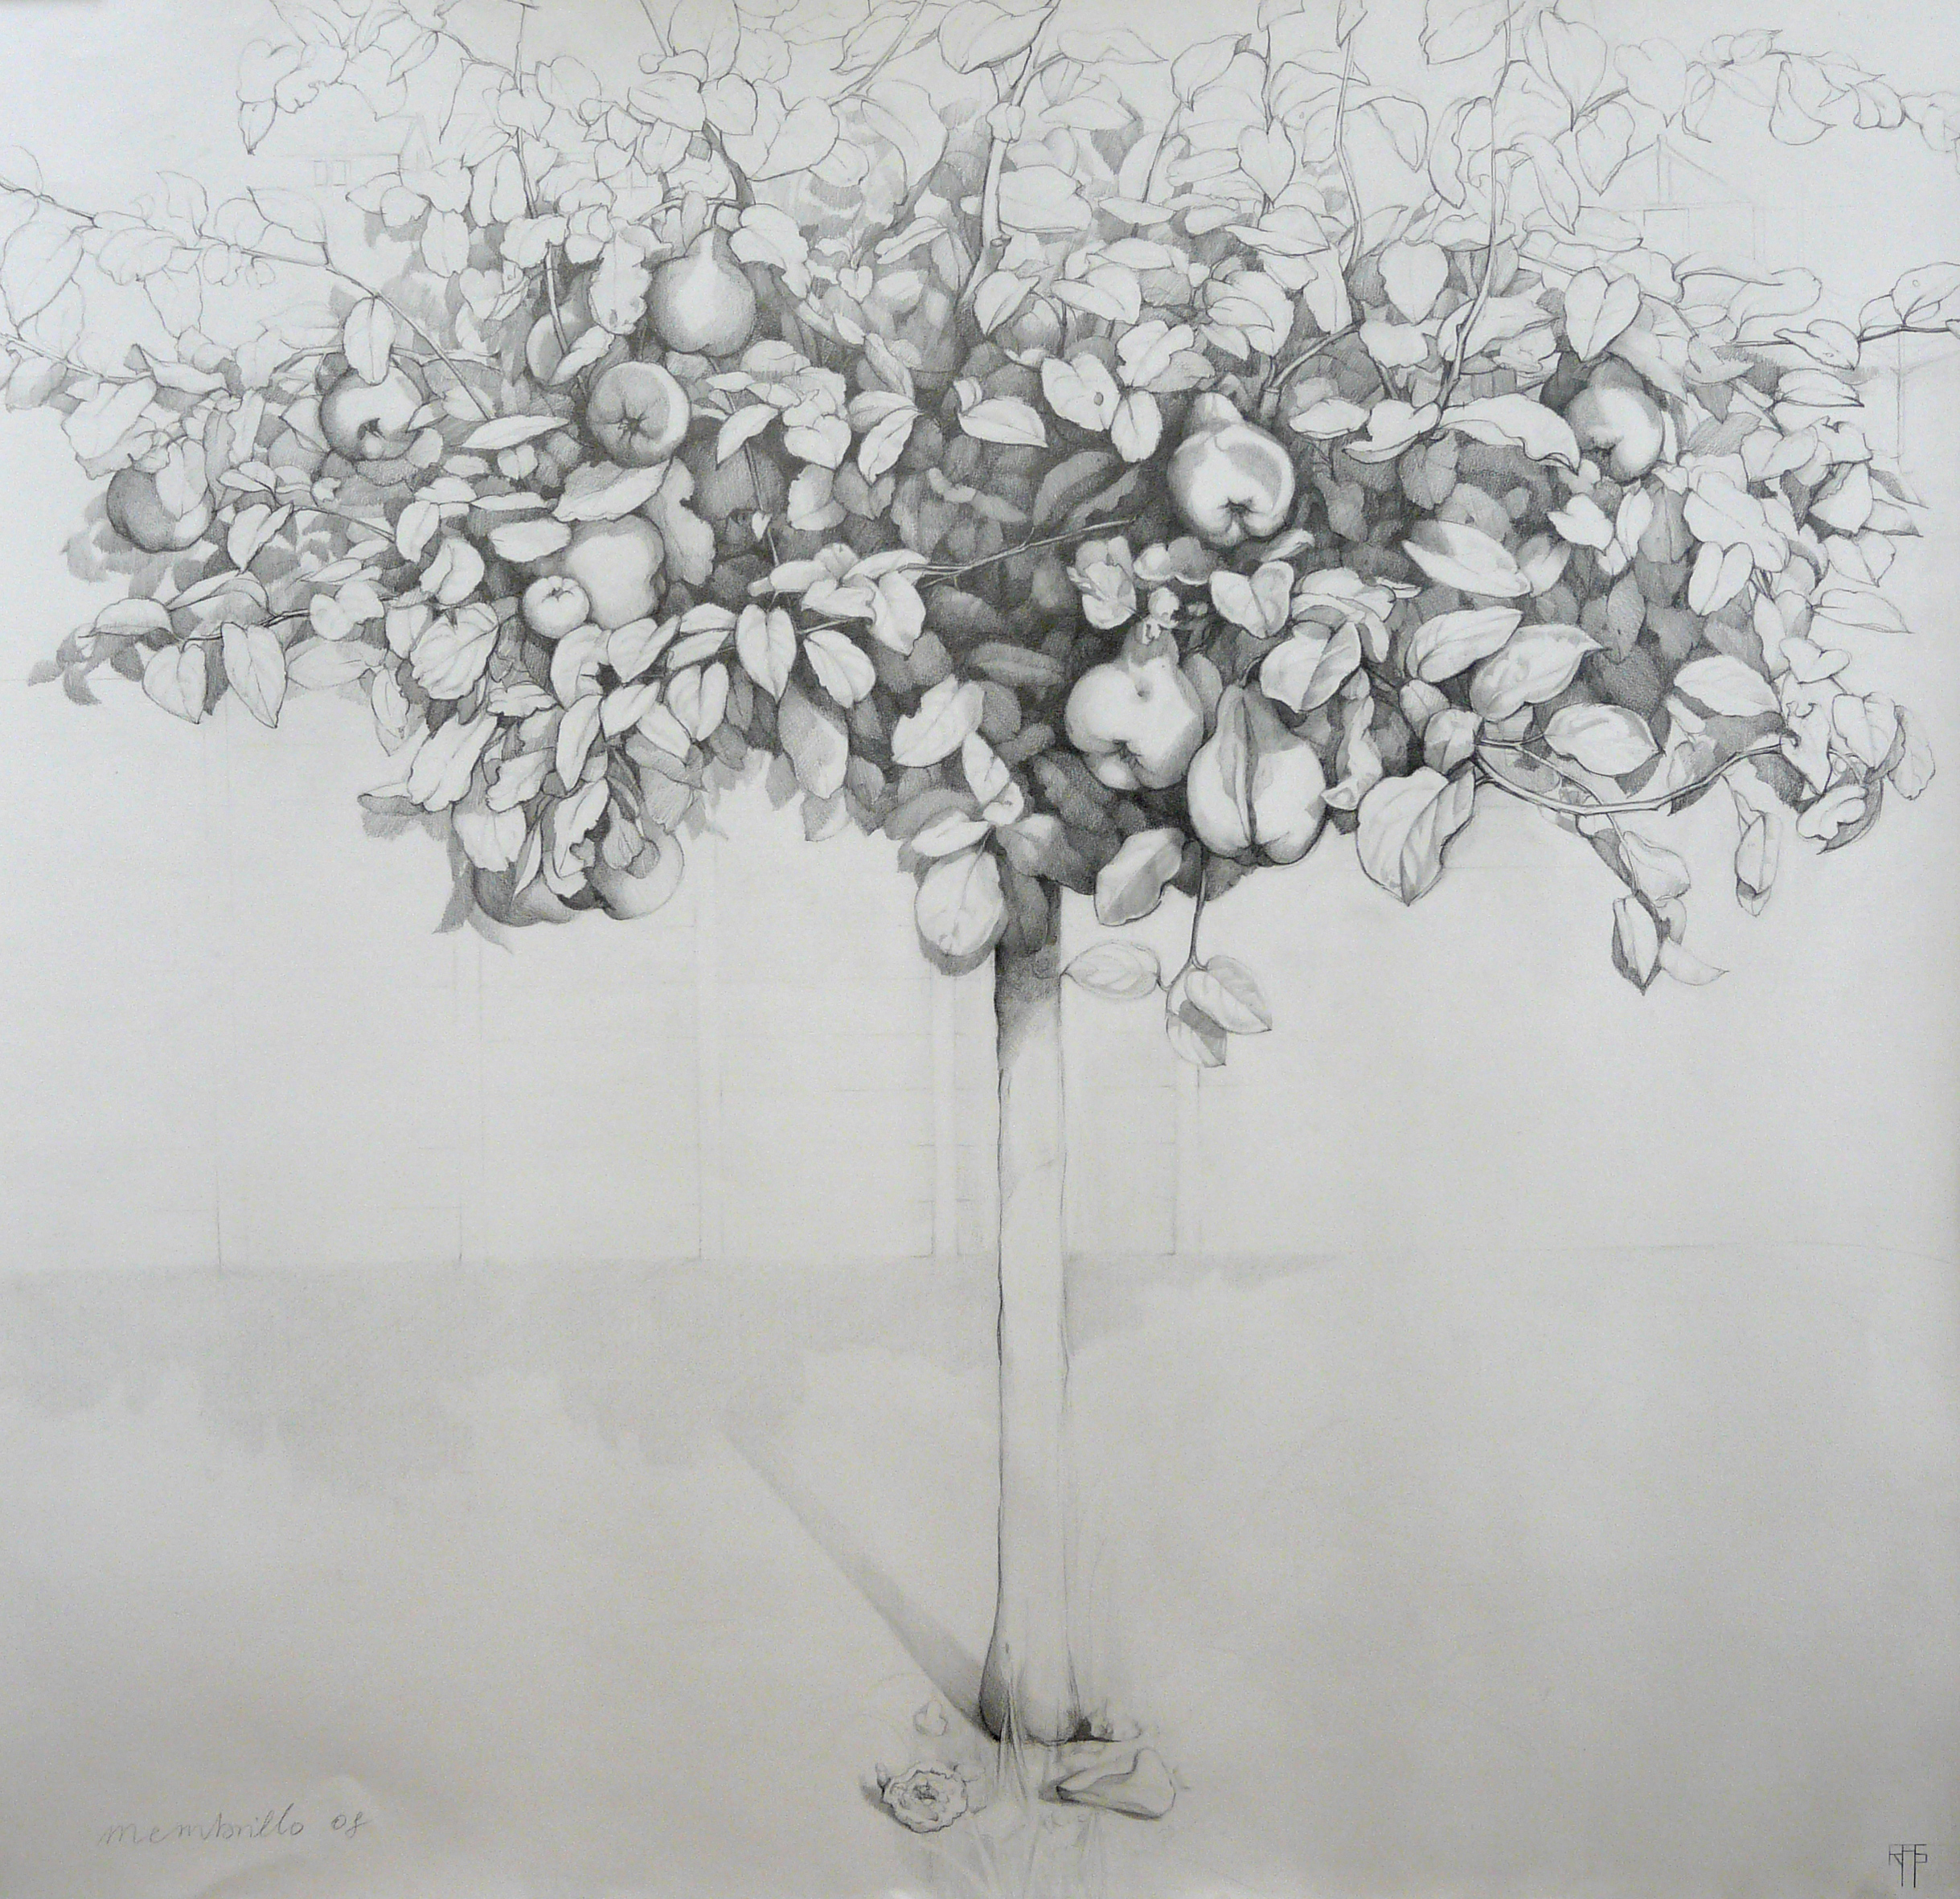 Membrillo III. Graphite on paper. 106x110cm. Private collection